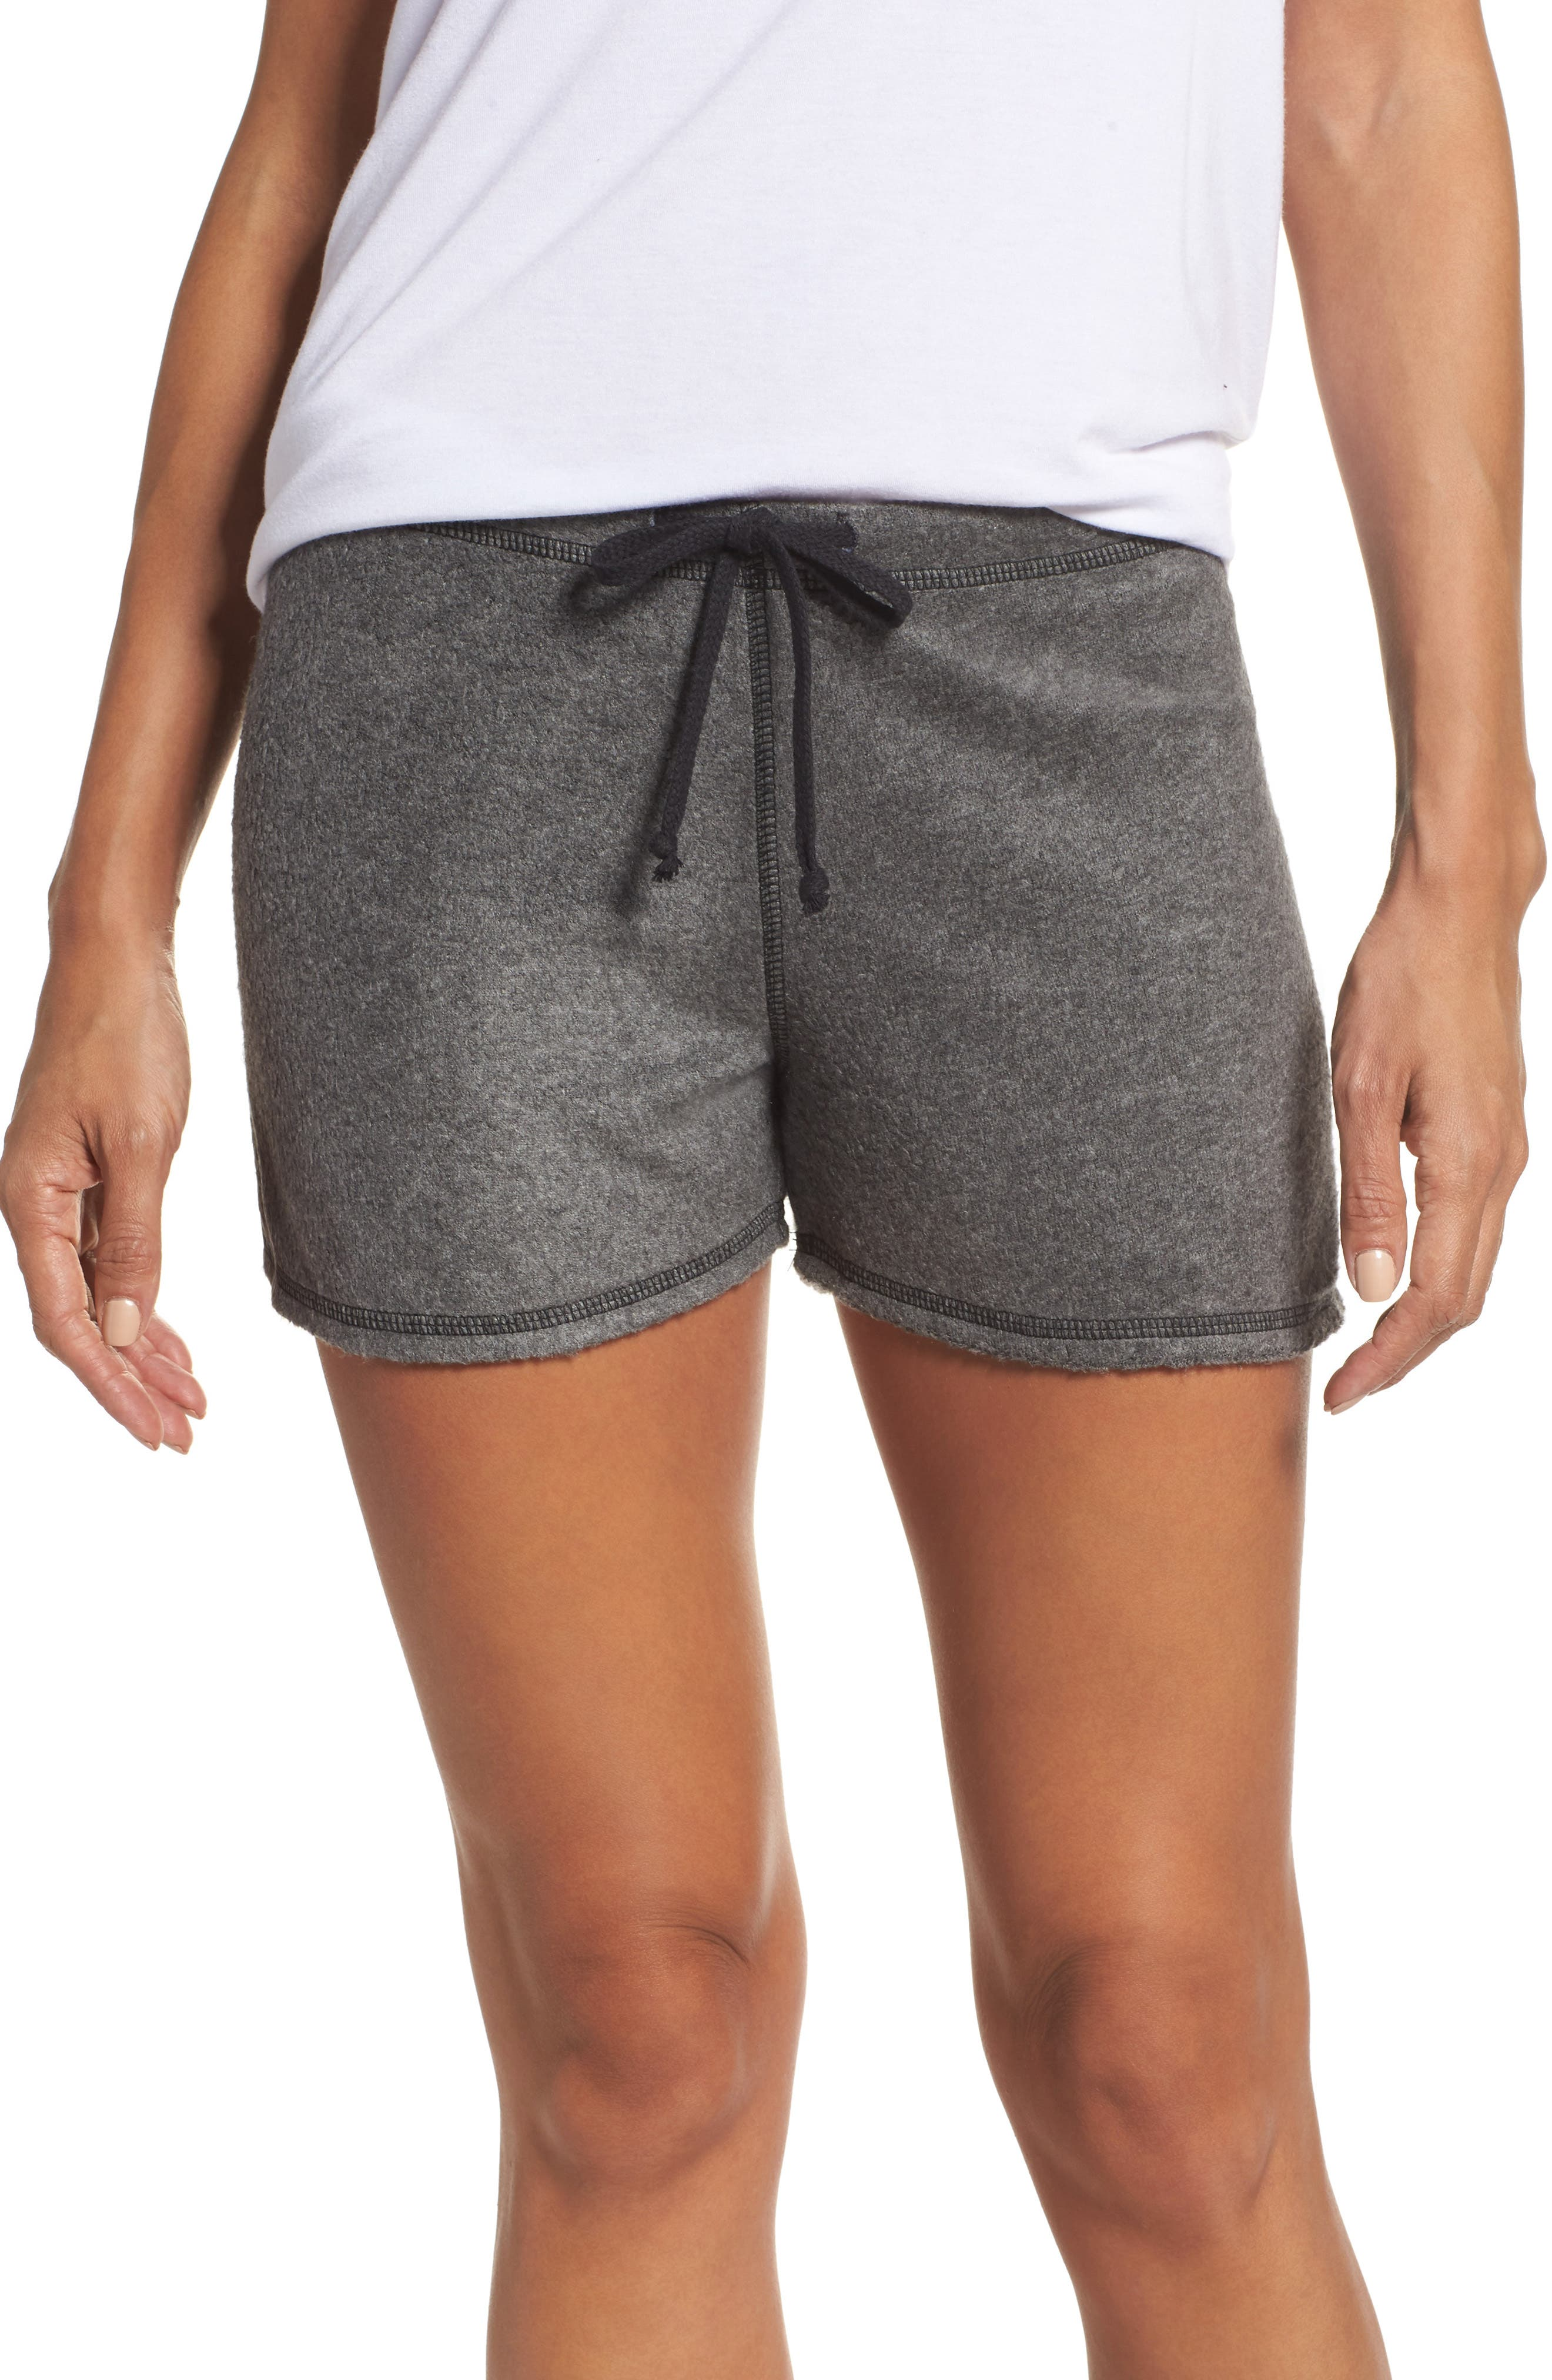 Traci Fleece Lounge Shorts,                             Main thumbnail 1, color,                             020